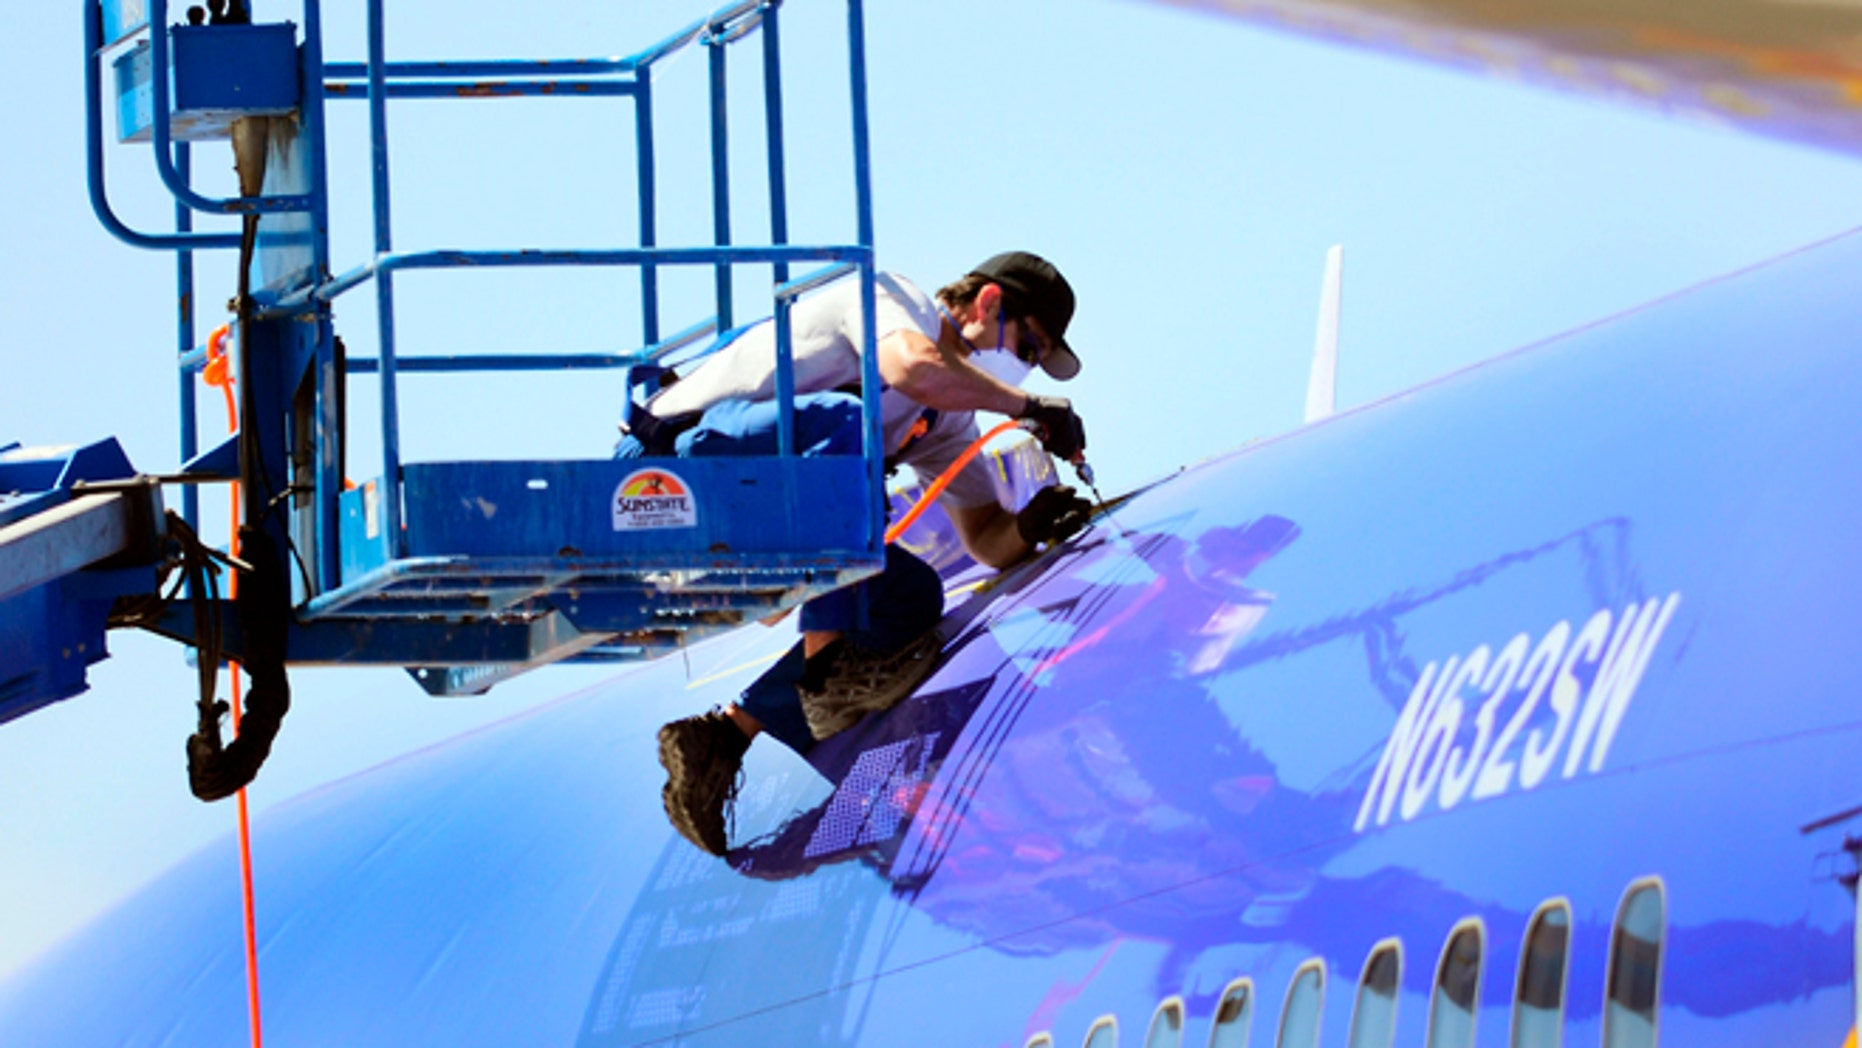 April 3, 2011: This photo shows a member of the National Transportation and Safety Board investigating the emergency landing of Southwest Airlines flight 812 cutting away a portion of the planes fuselage in Yuma, Ariz.